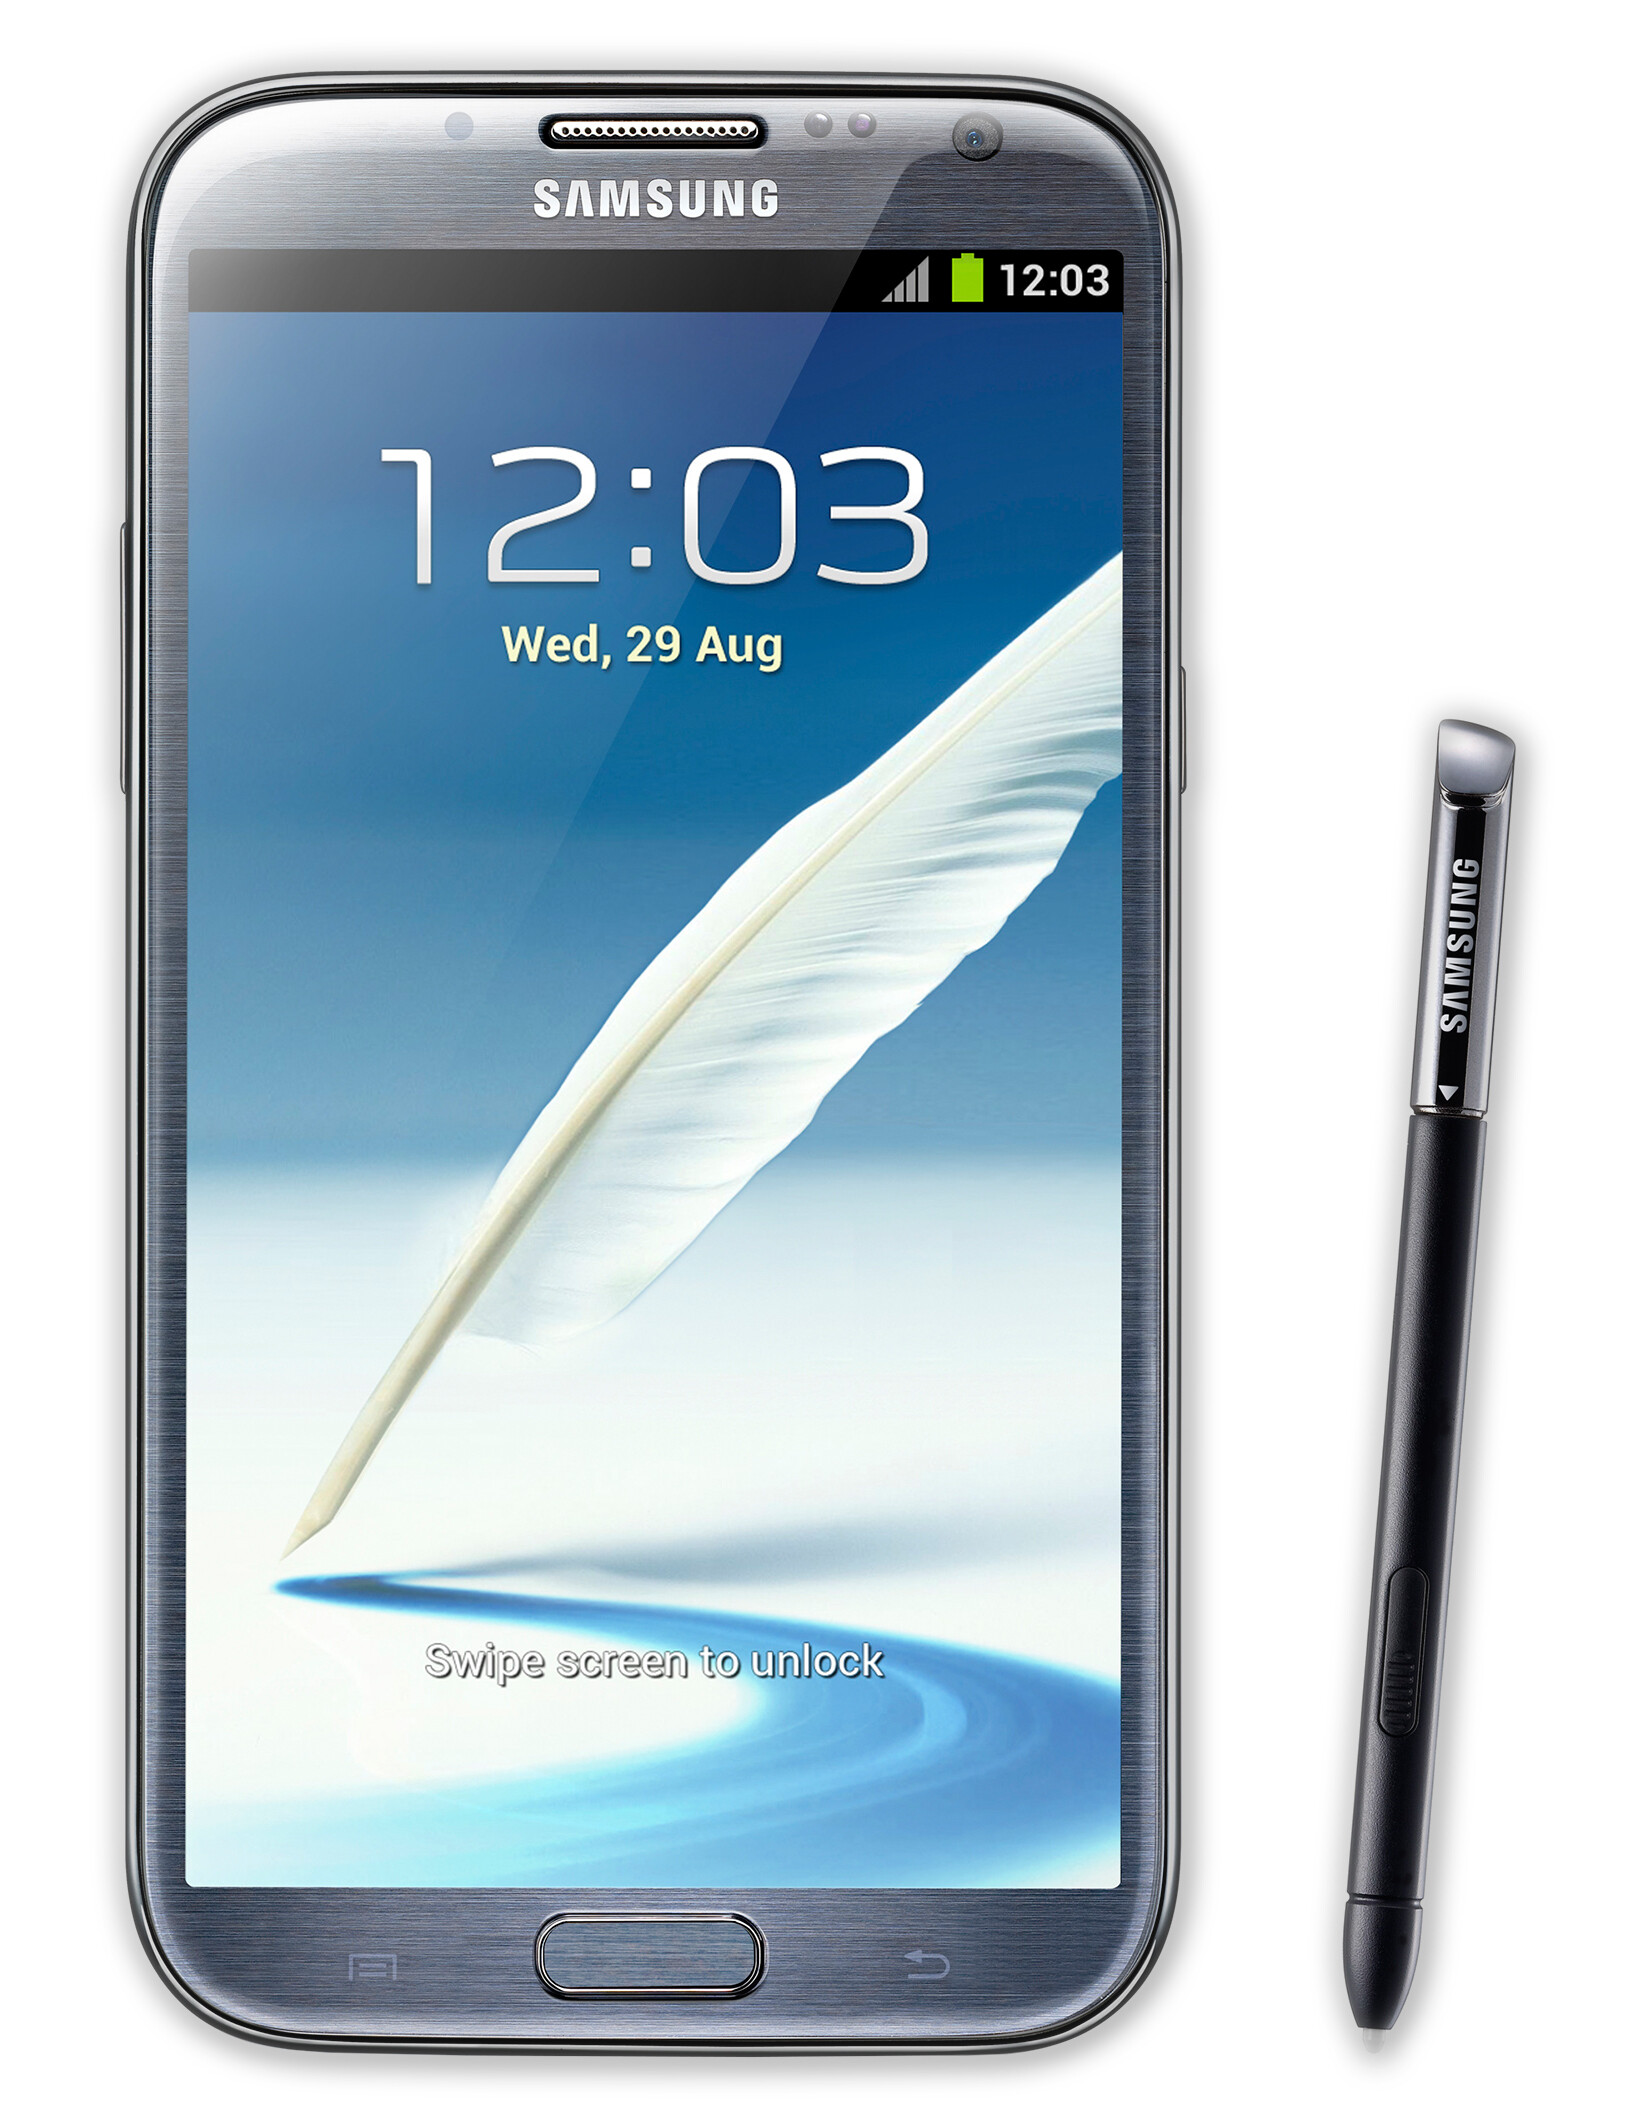 Samsung GALAXY Note II T-Mobile specs